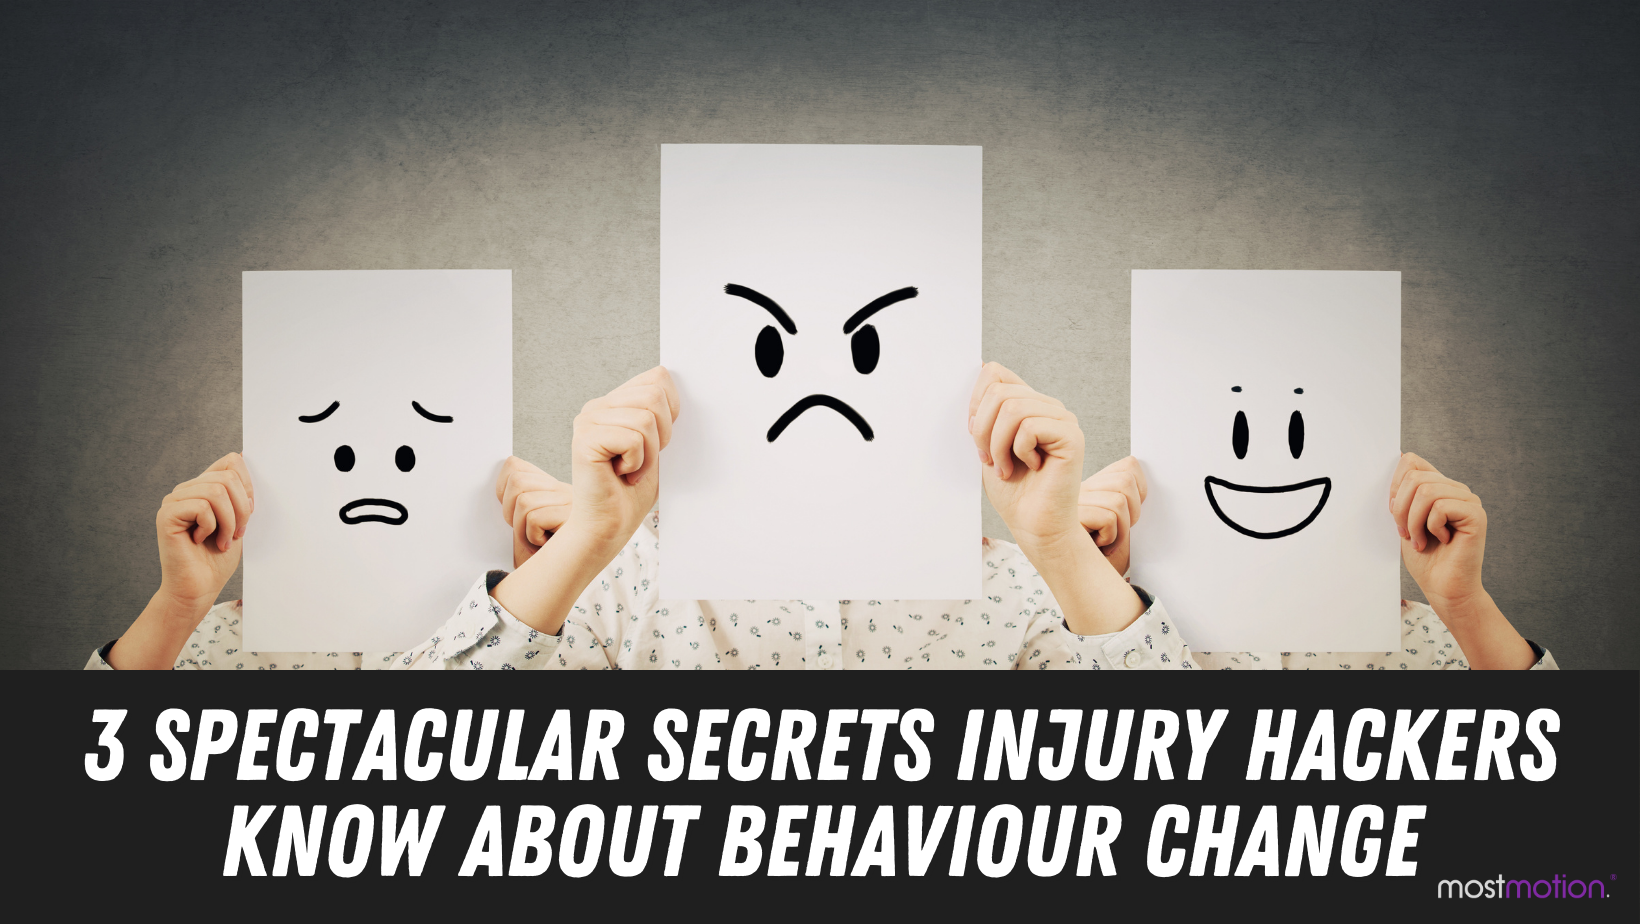 3 Spectacular Secrets Injury Hackers Know About Behaviour Change